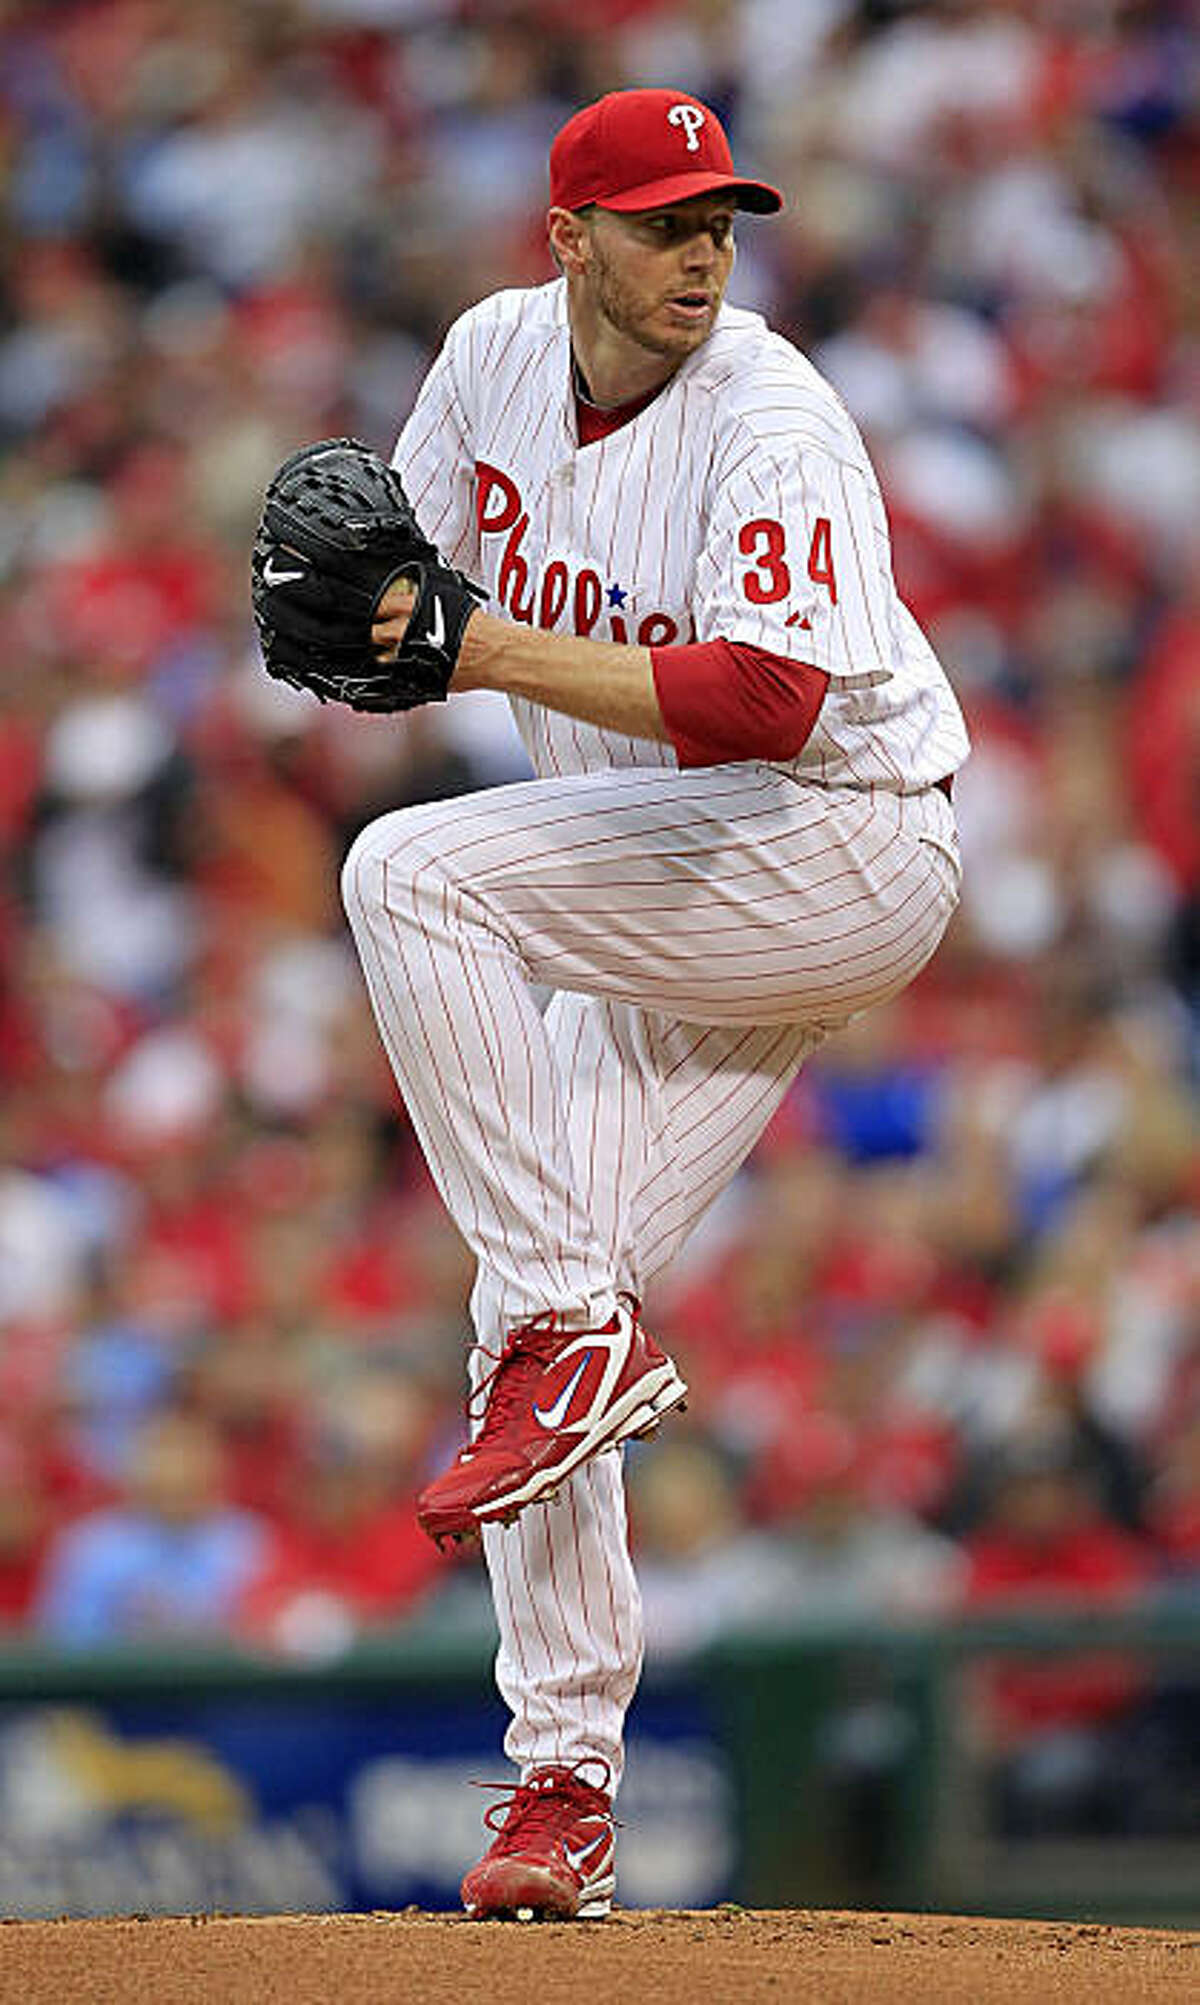 PHILADELPHIA - OCTOBER 06: Roy Halladay #34 of the Philadelphia Phillies delivers in Game 1 of the NLDS against the Cincinnati Reds at Citizens Bank Park on October 6, 2010 in Philadelphia, Pennsylvania. (Photo by Chris Trotman/Getty Images) *** Local Caption *** Roy Halladay